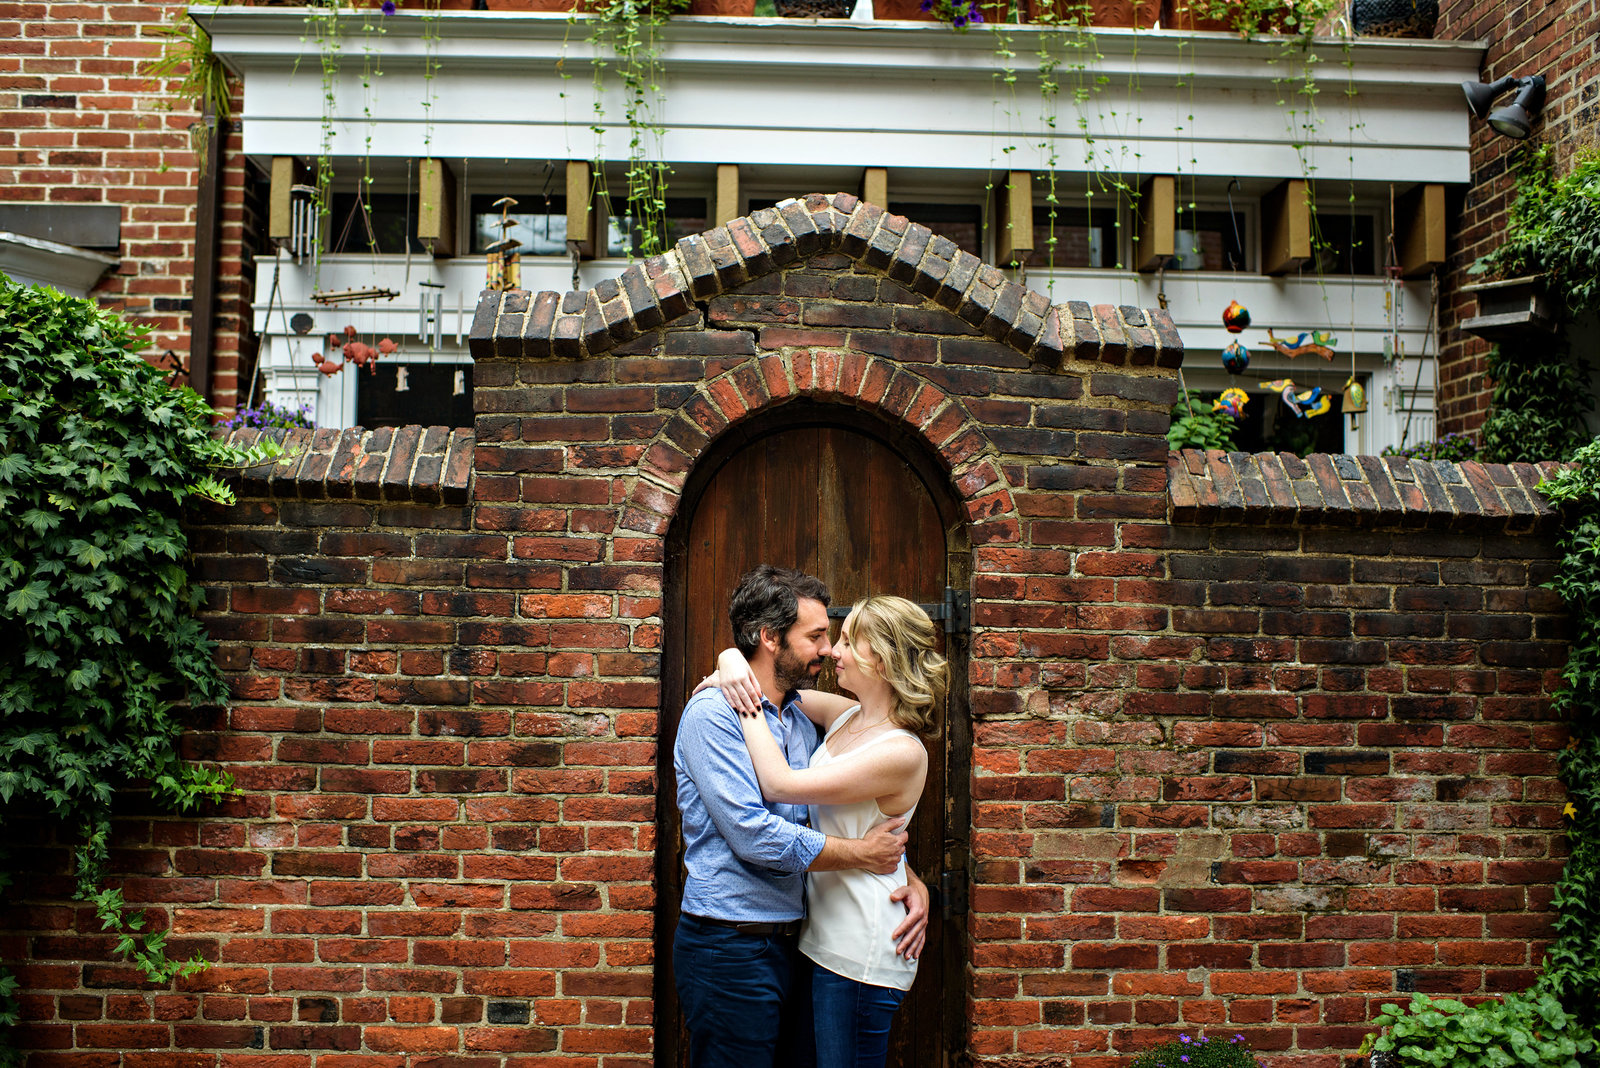 A couple in love with each other are framed in the doorway of a rowhome in center city philadelphia.